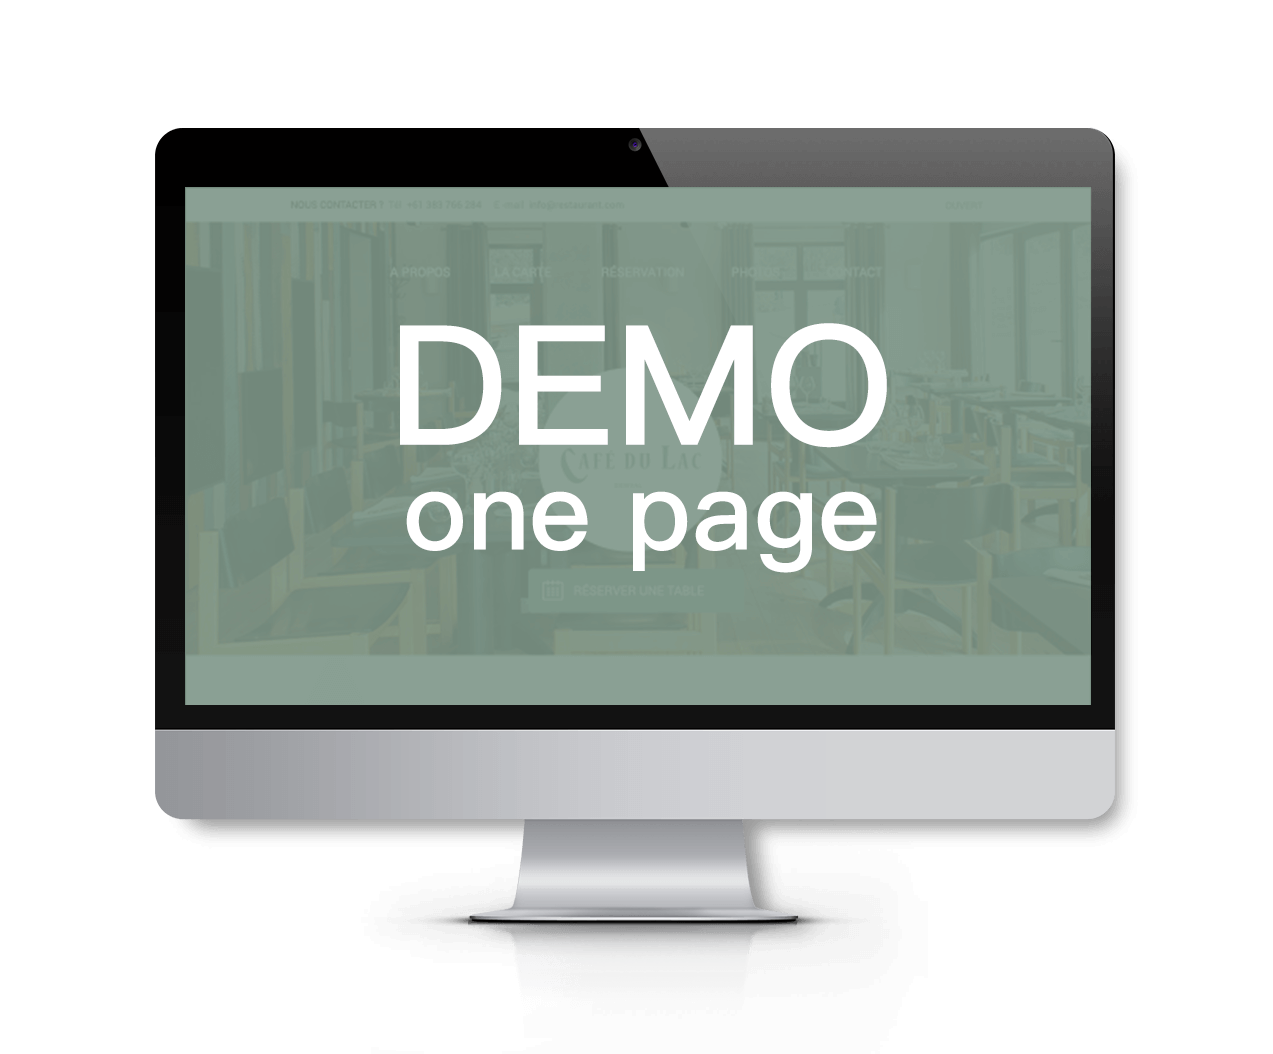 demo-cafedulac-one-page